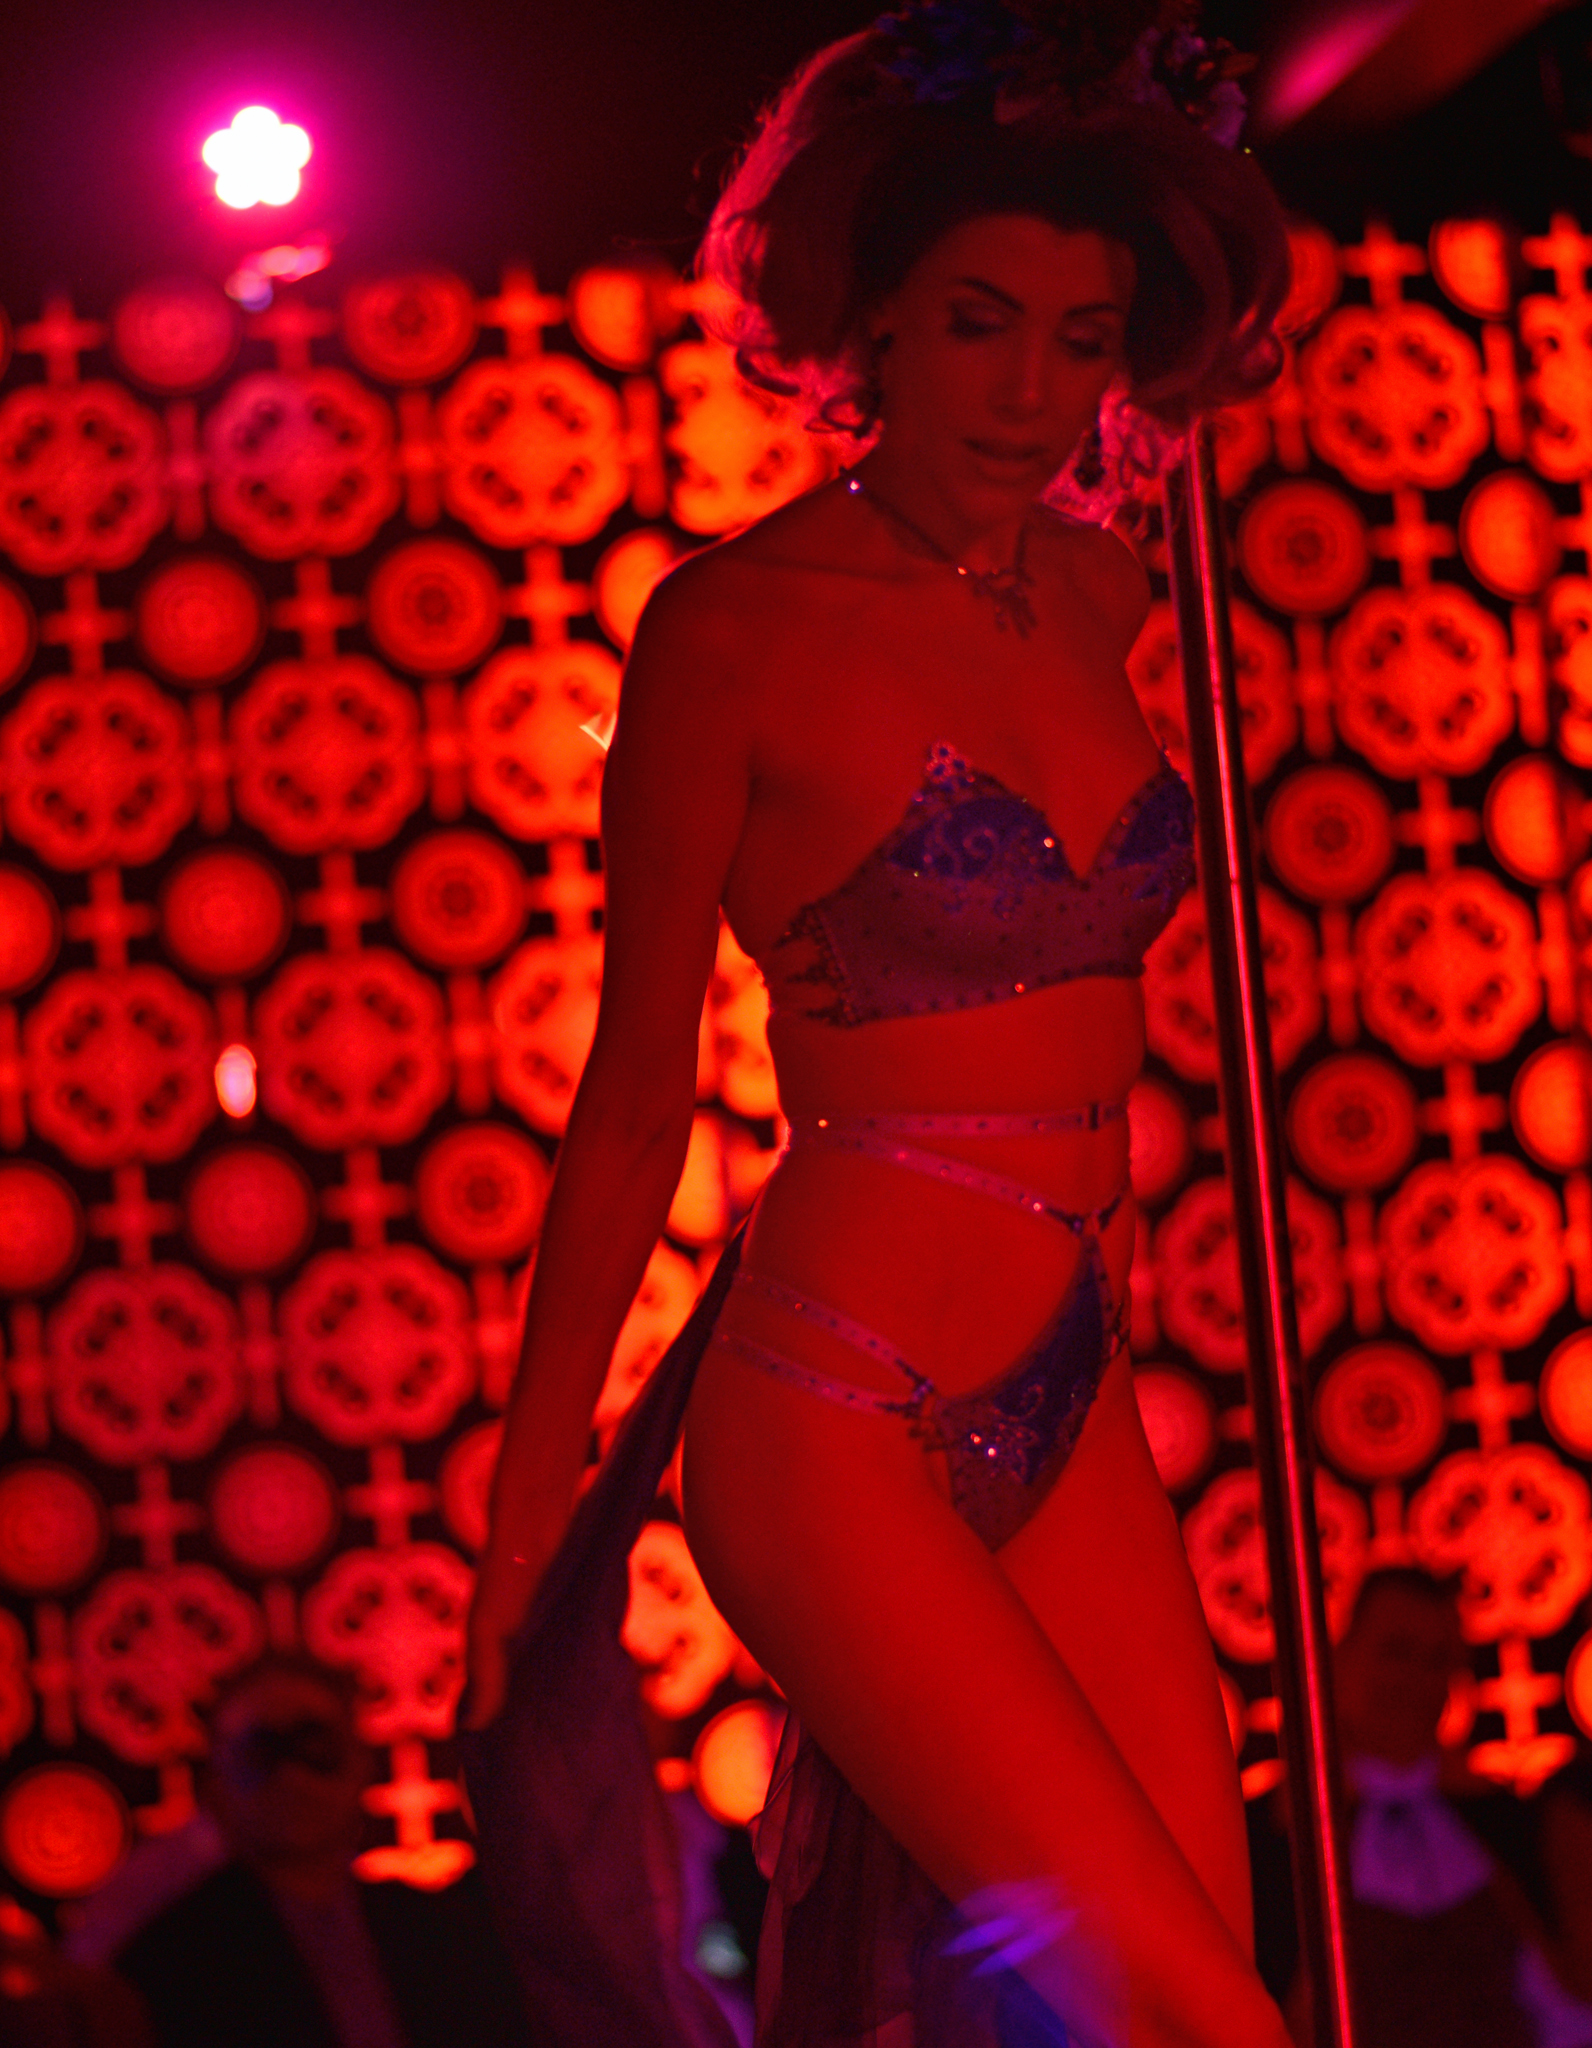 Photo of Lilly performing at Prive by Peter Jennings